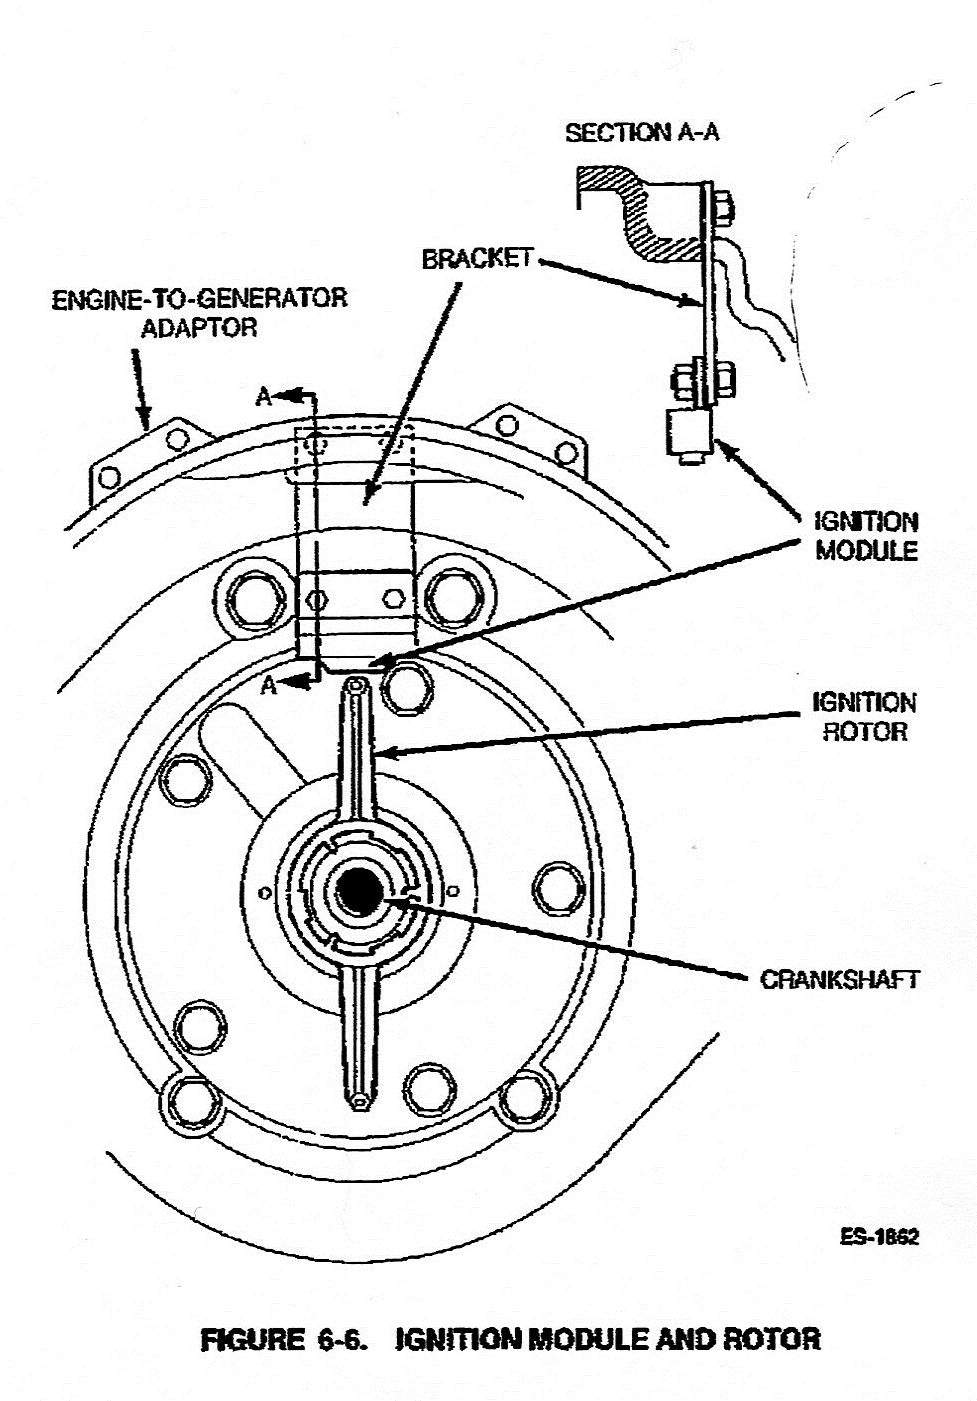 Cummins Onan Generator Parts Manual also Caac in addition Onan Generator Wiring Diagram Awesome Fleetwood Pace Arrow Owners Manuals Onan Kw Bfa Genset Of Onan Generator Wiring Diagram as well Maxresdefault together with Fuel Pump Relay Small. on onan 4000 generator wiring diagram